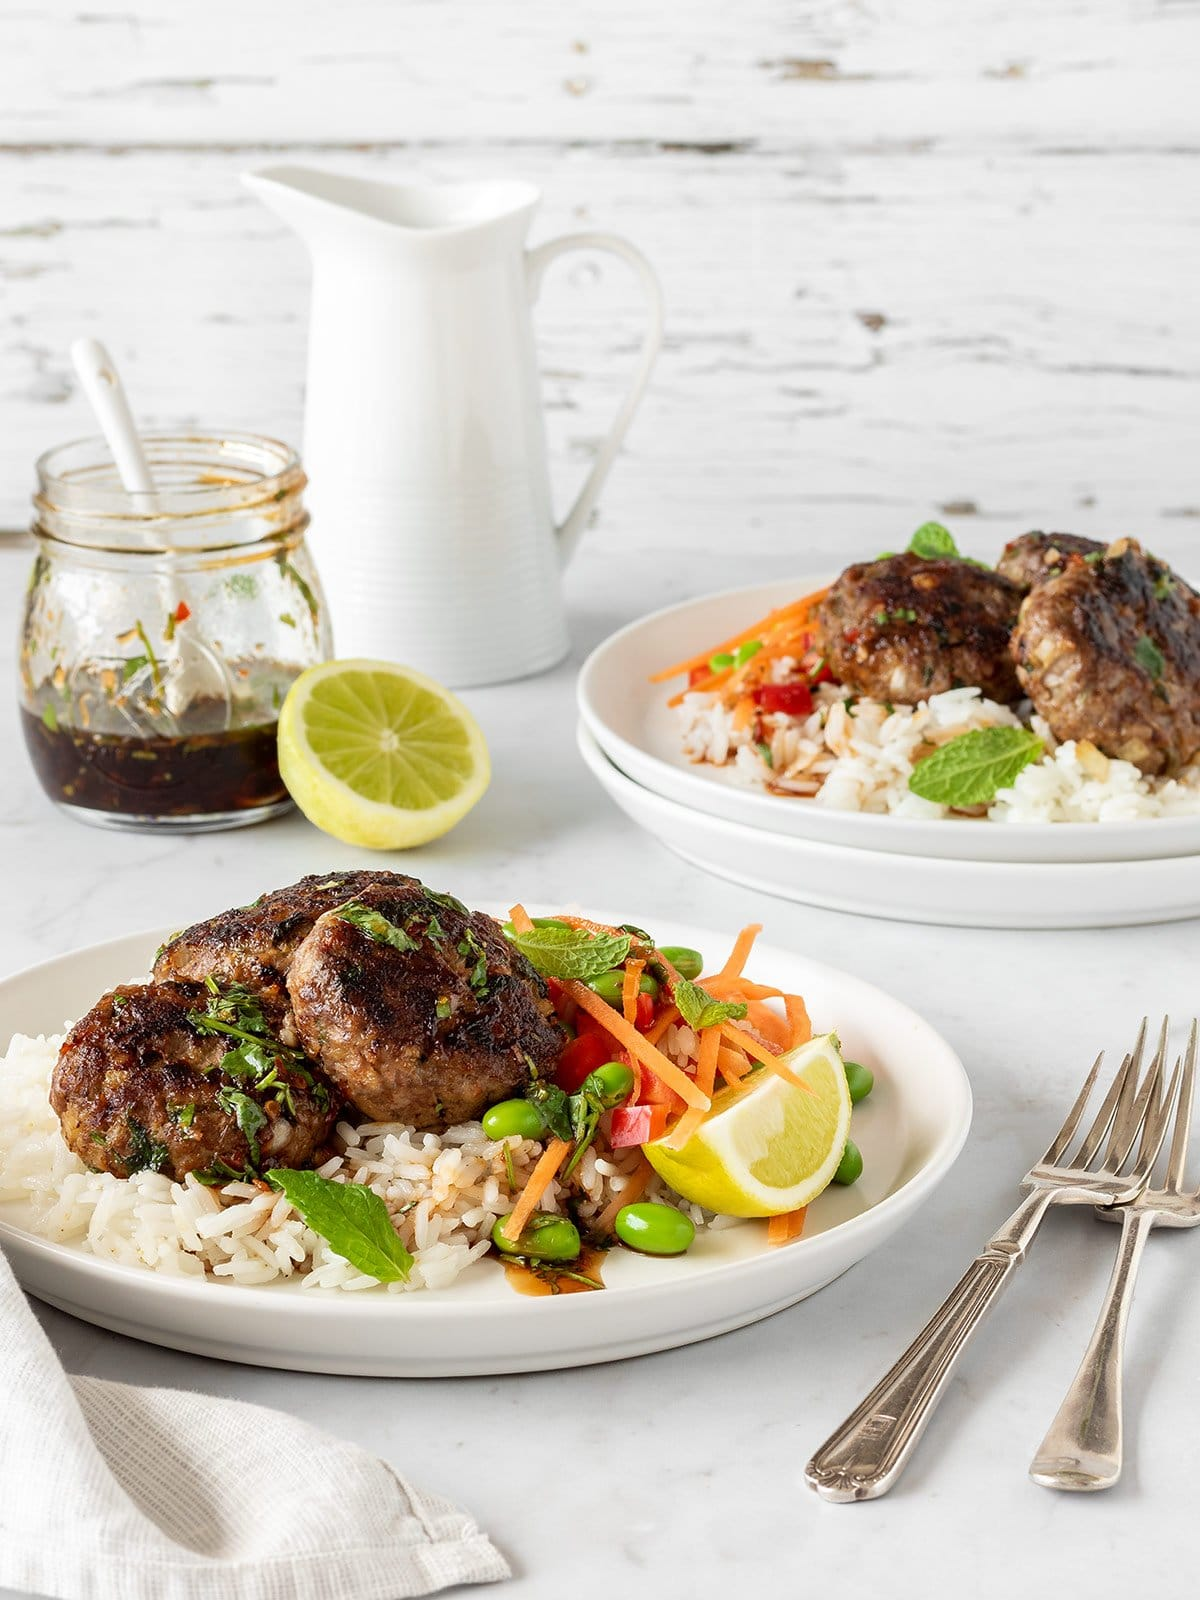 Asian spiced lamb patties with jasmine rice, edamame, carrots, capsicum and a chilli lime dressing.